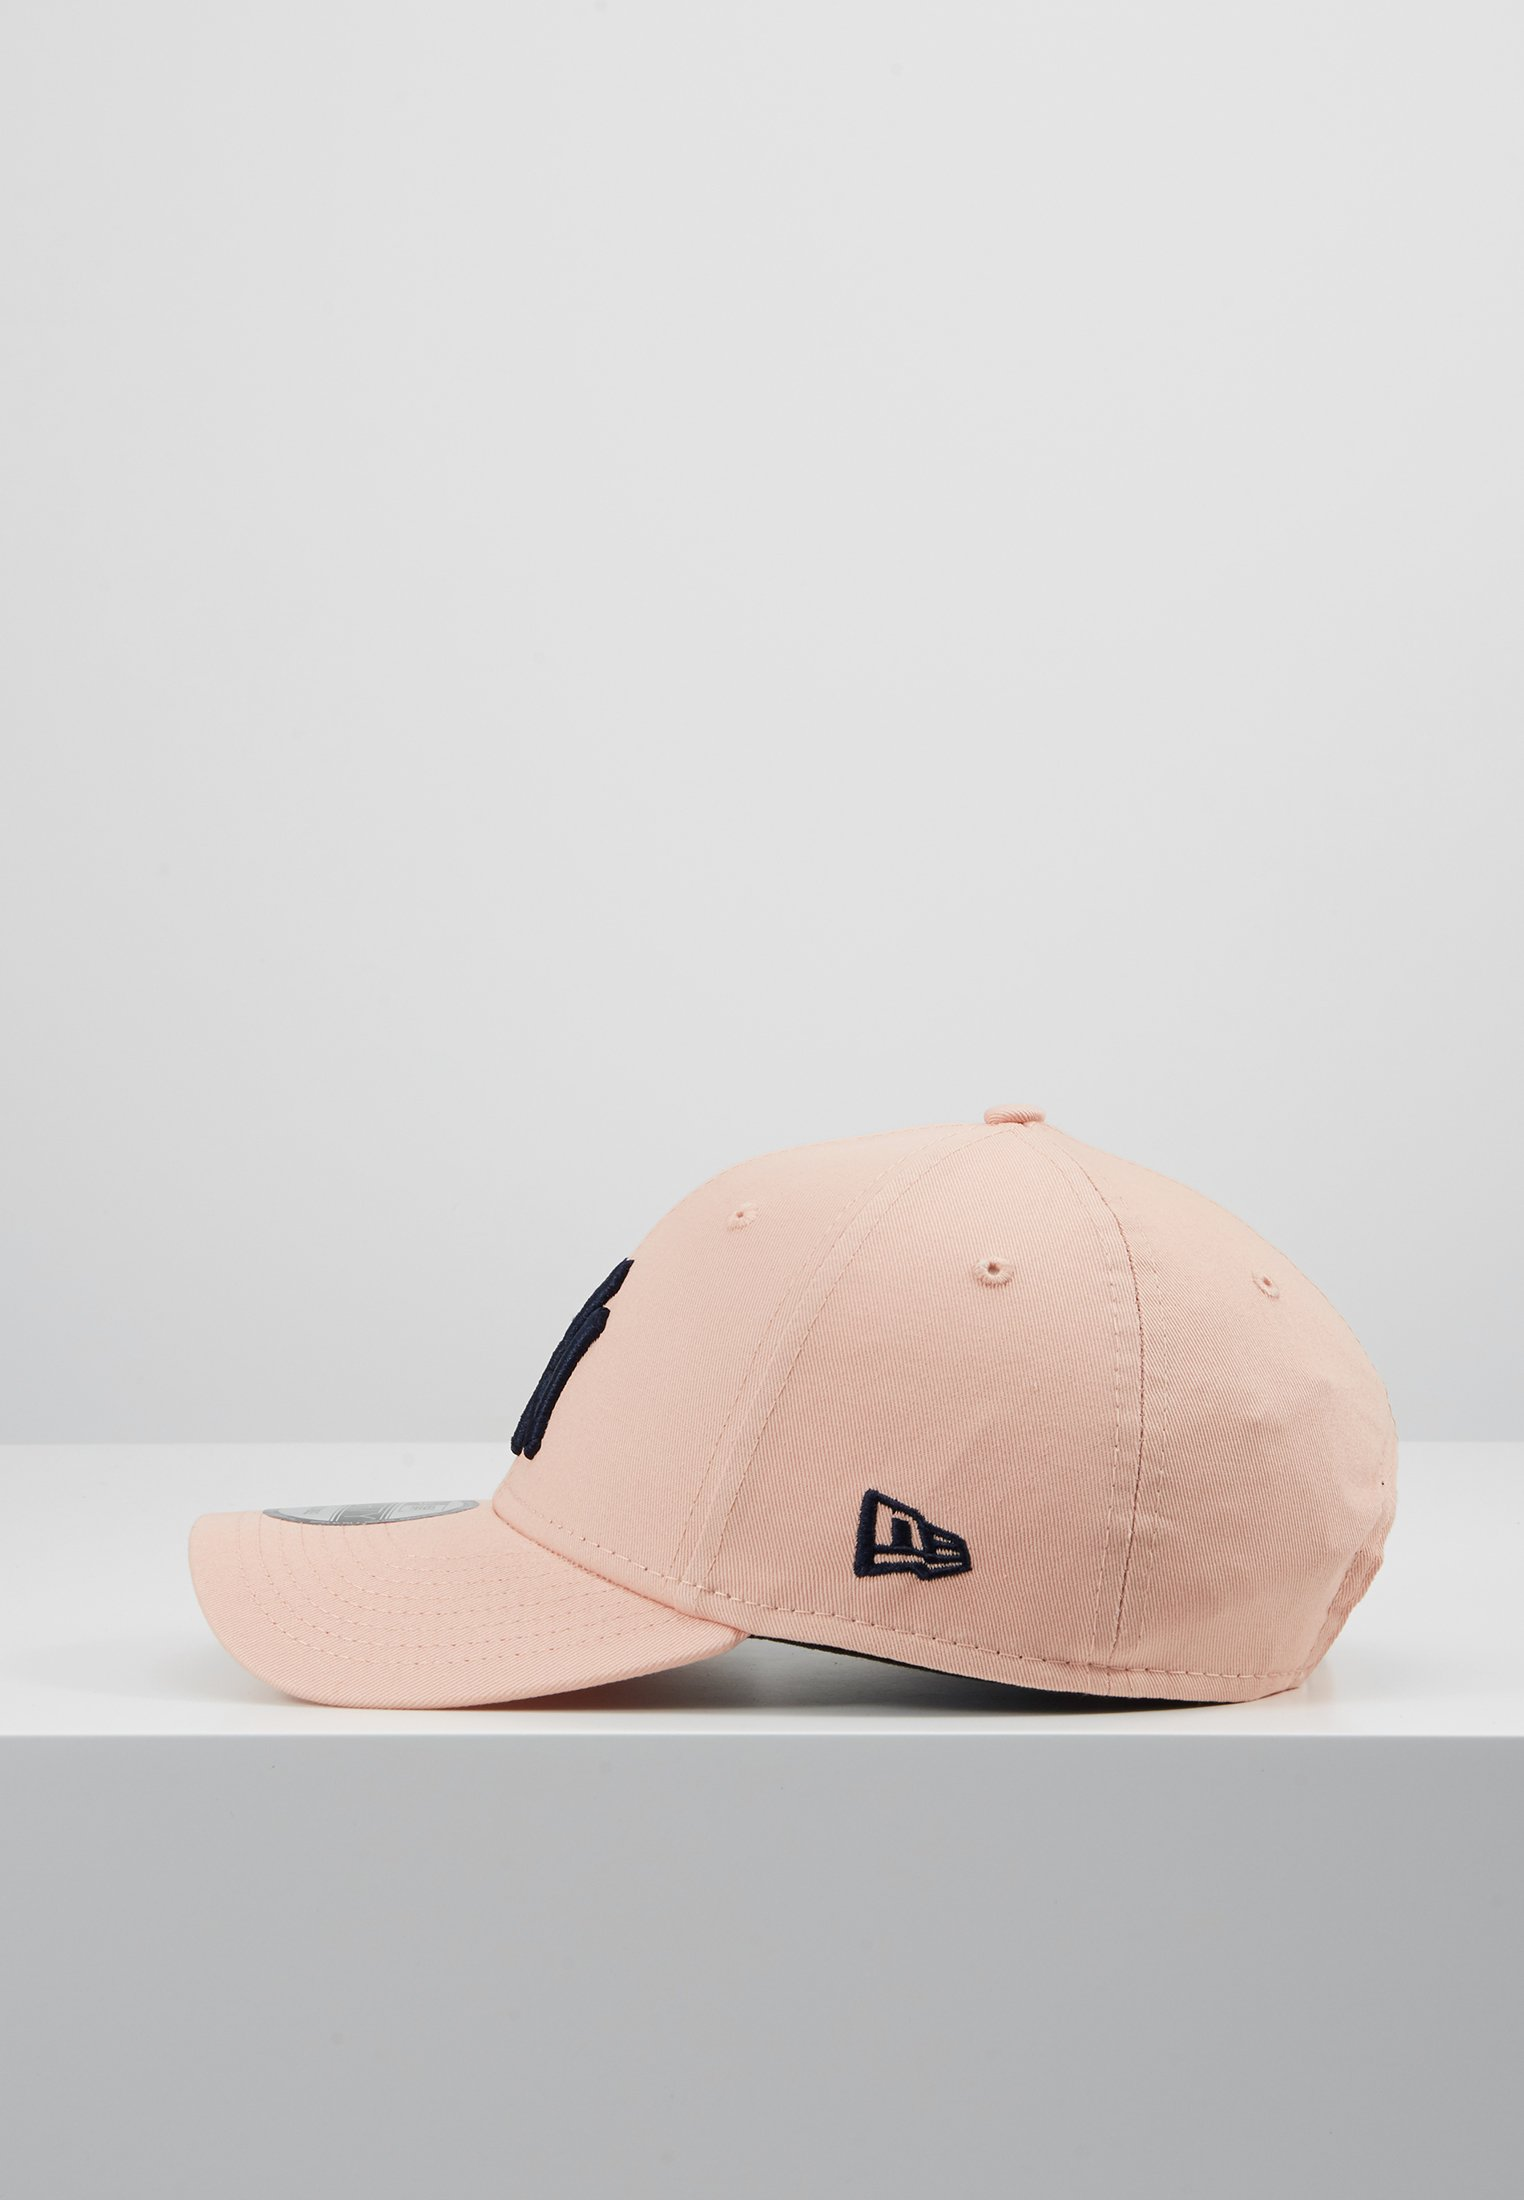 New Era LEAGUE ESSENTIAL 9FORTY - Cap - light pink/lyserosa mwmDzaT8bvzjctP